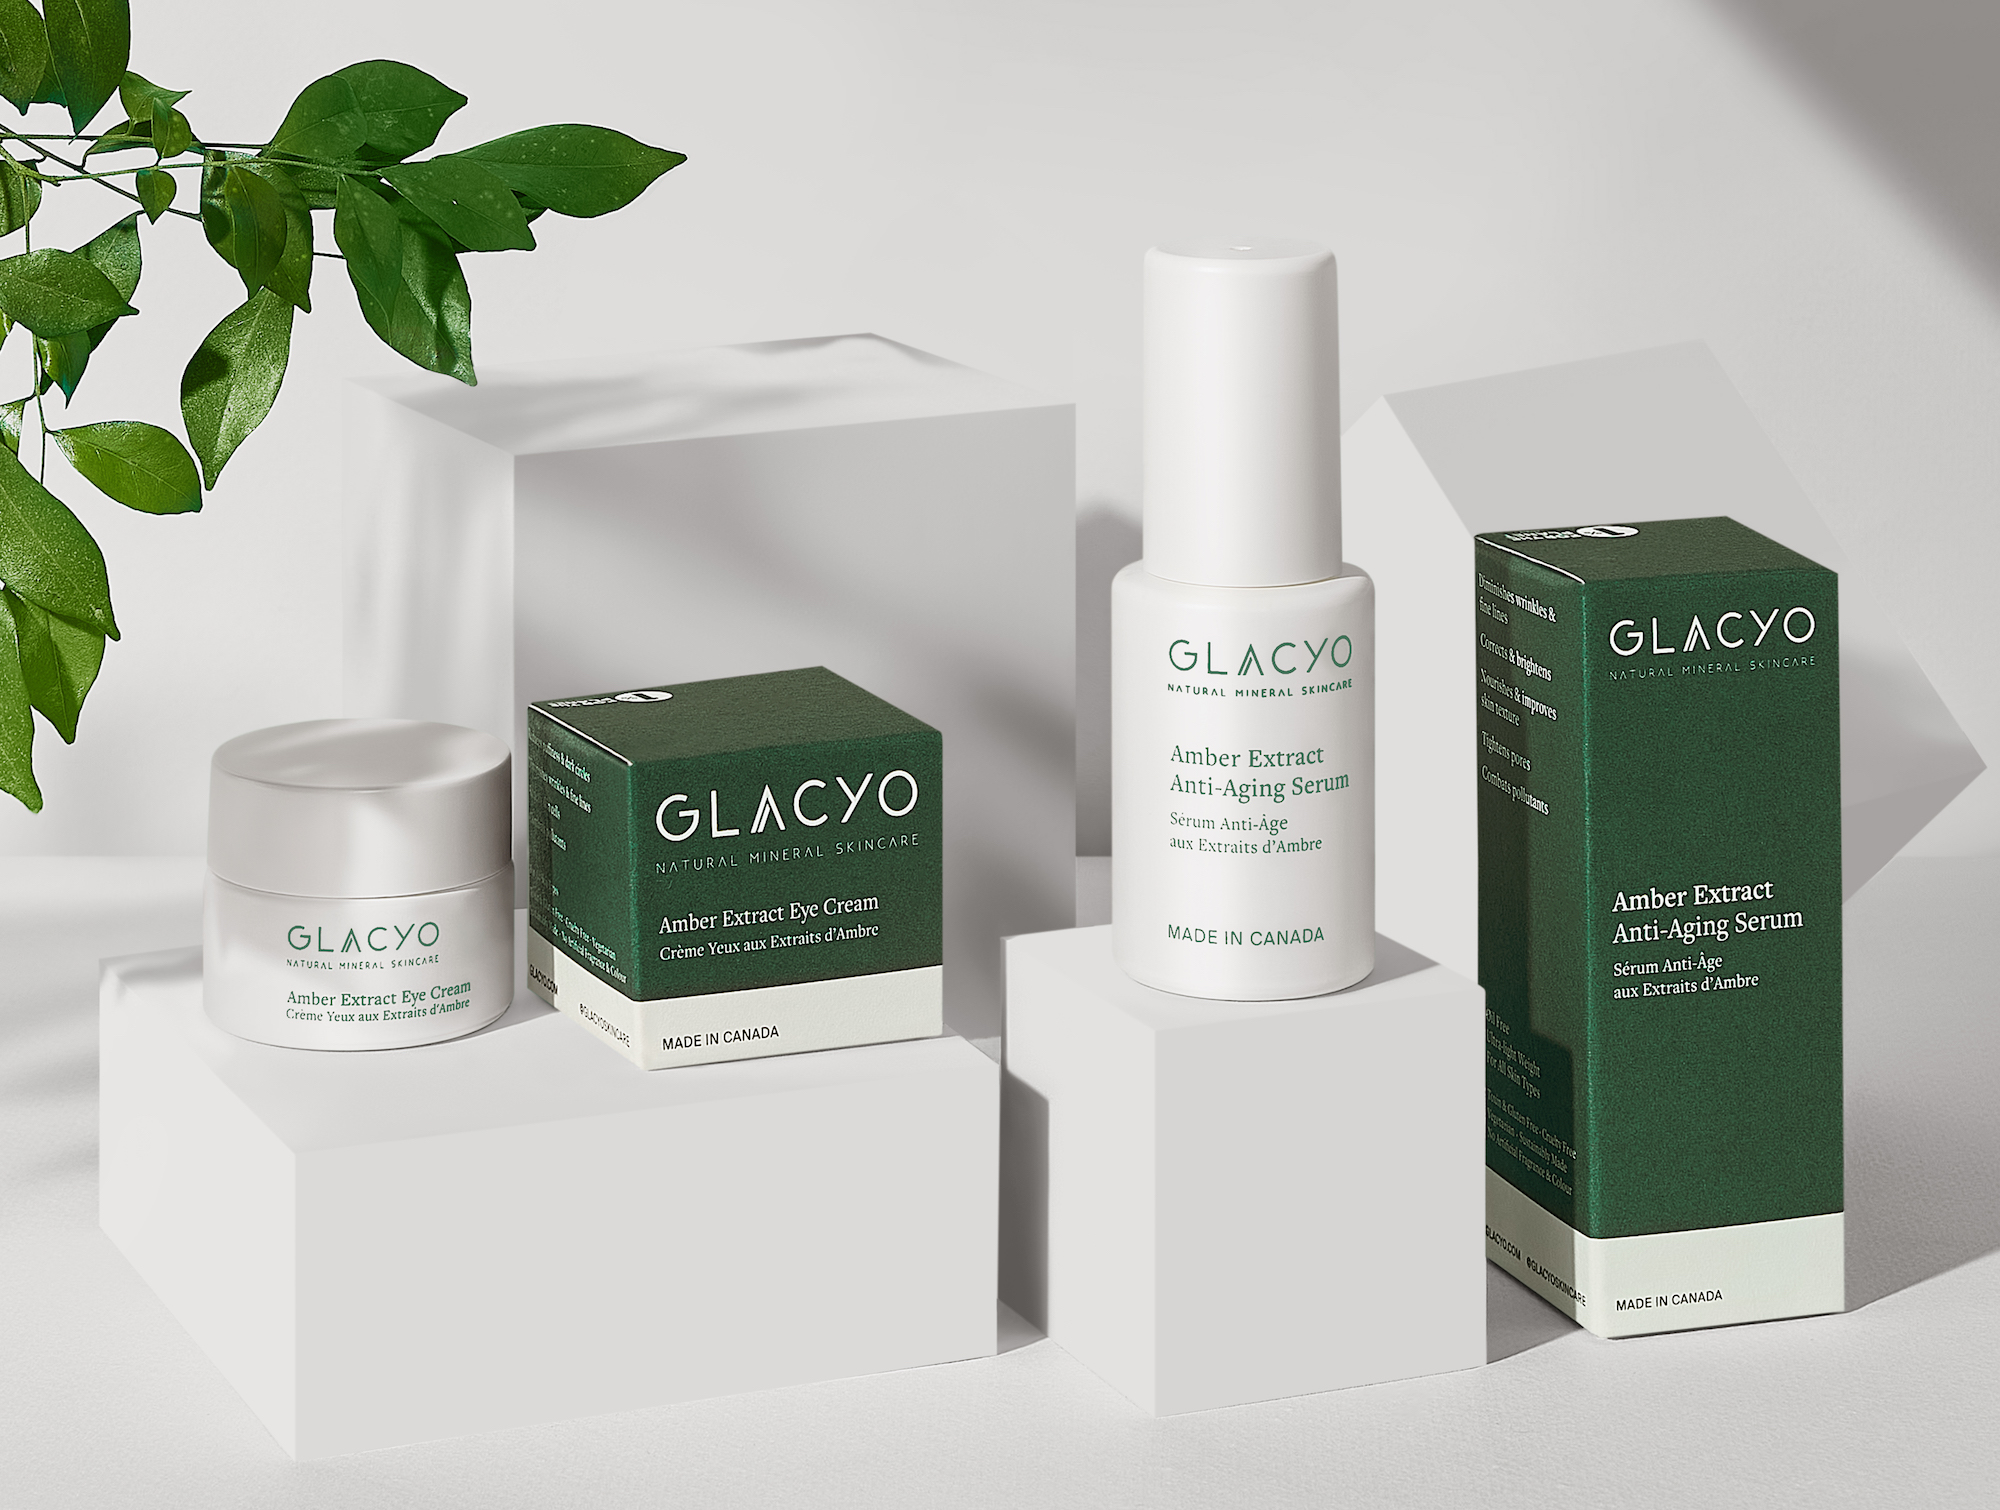 Glacyo-new-beauty-brand-launches